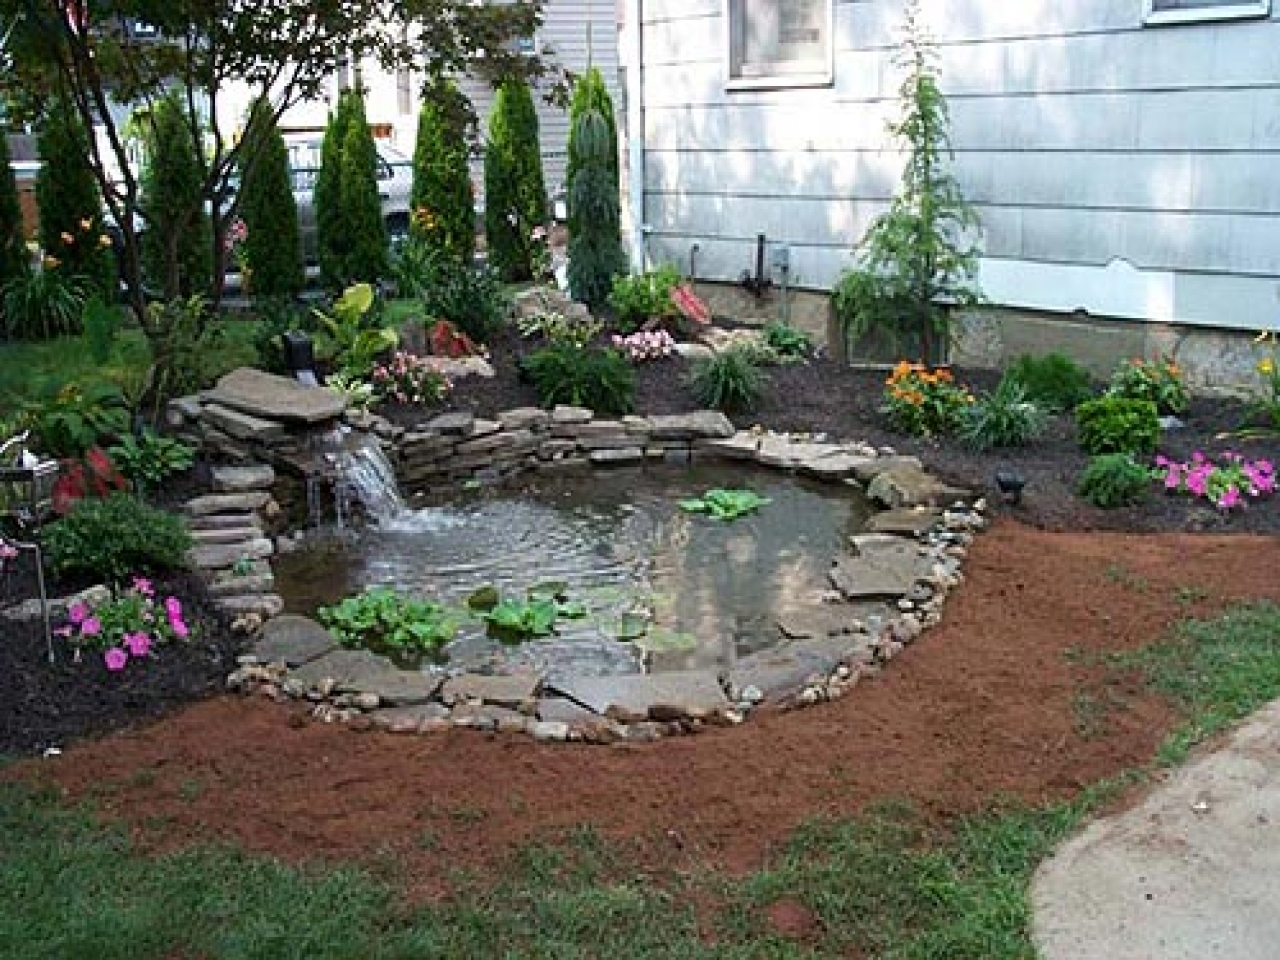 Backyard Landscaping Ideas For Pond Diy Backyard Pond Landscaping within Backyard Pond Landscaping